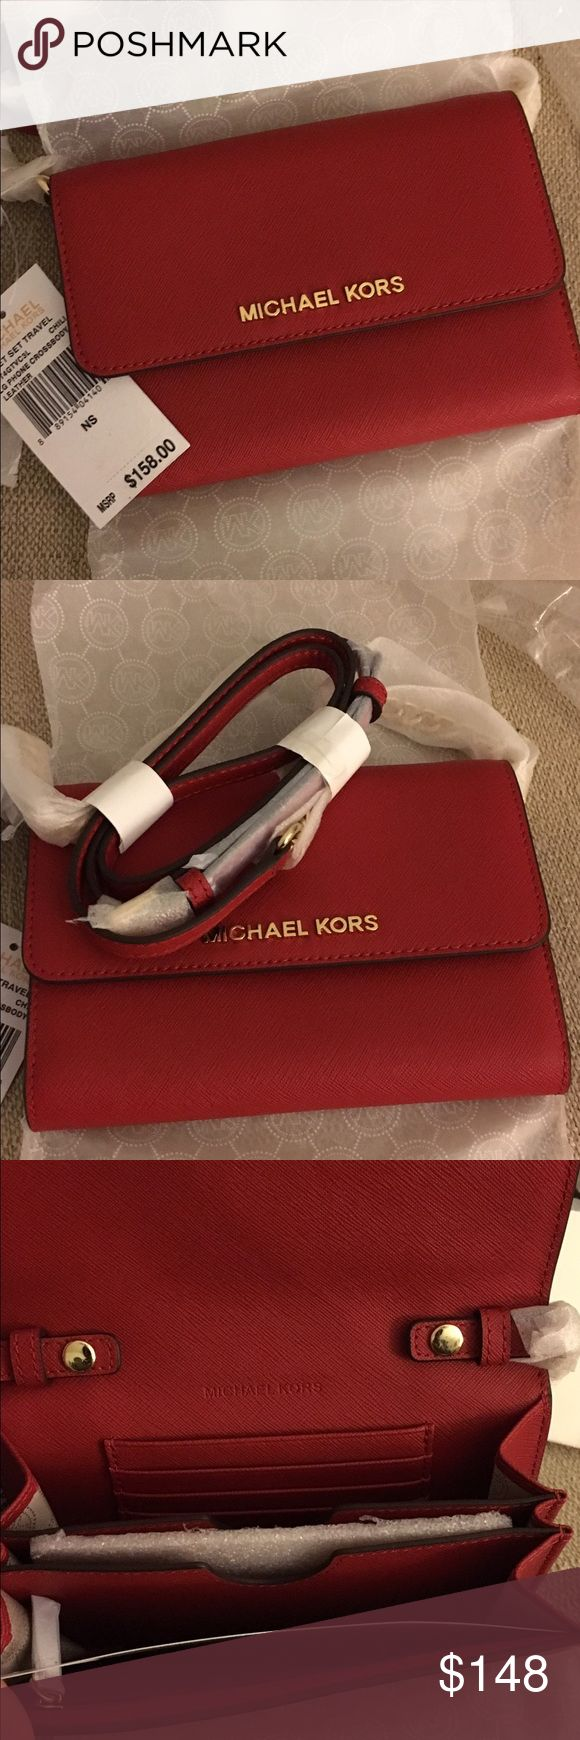 Michael Kors Large Phone Crossbody Brand new Michael Kors Large Phone Crossbody in a beautiful red Cale's Chili. The Crossbody has a slot for iPhone/smartphone, 5 card holder slots, and 1 zipper pocket located inside. There's also an outside slip pocket. MICHAEL Michael Kors Bags Crossbody Bags